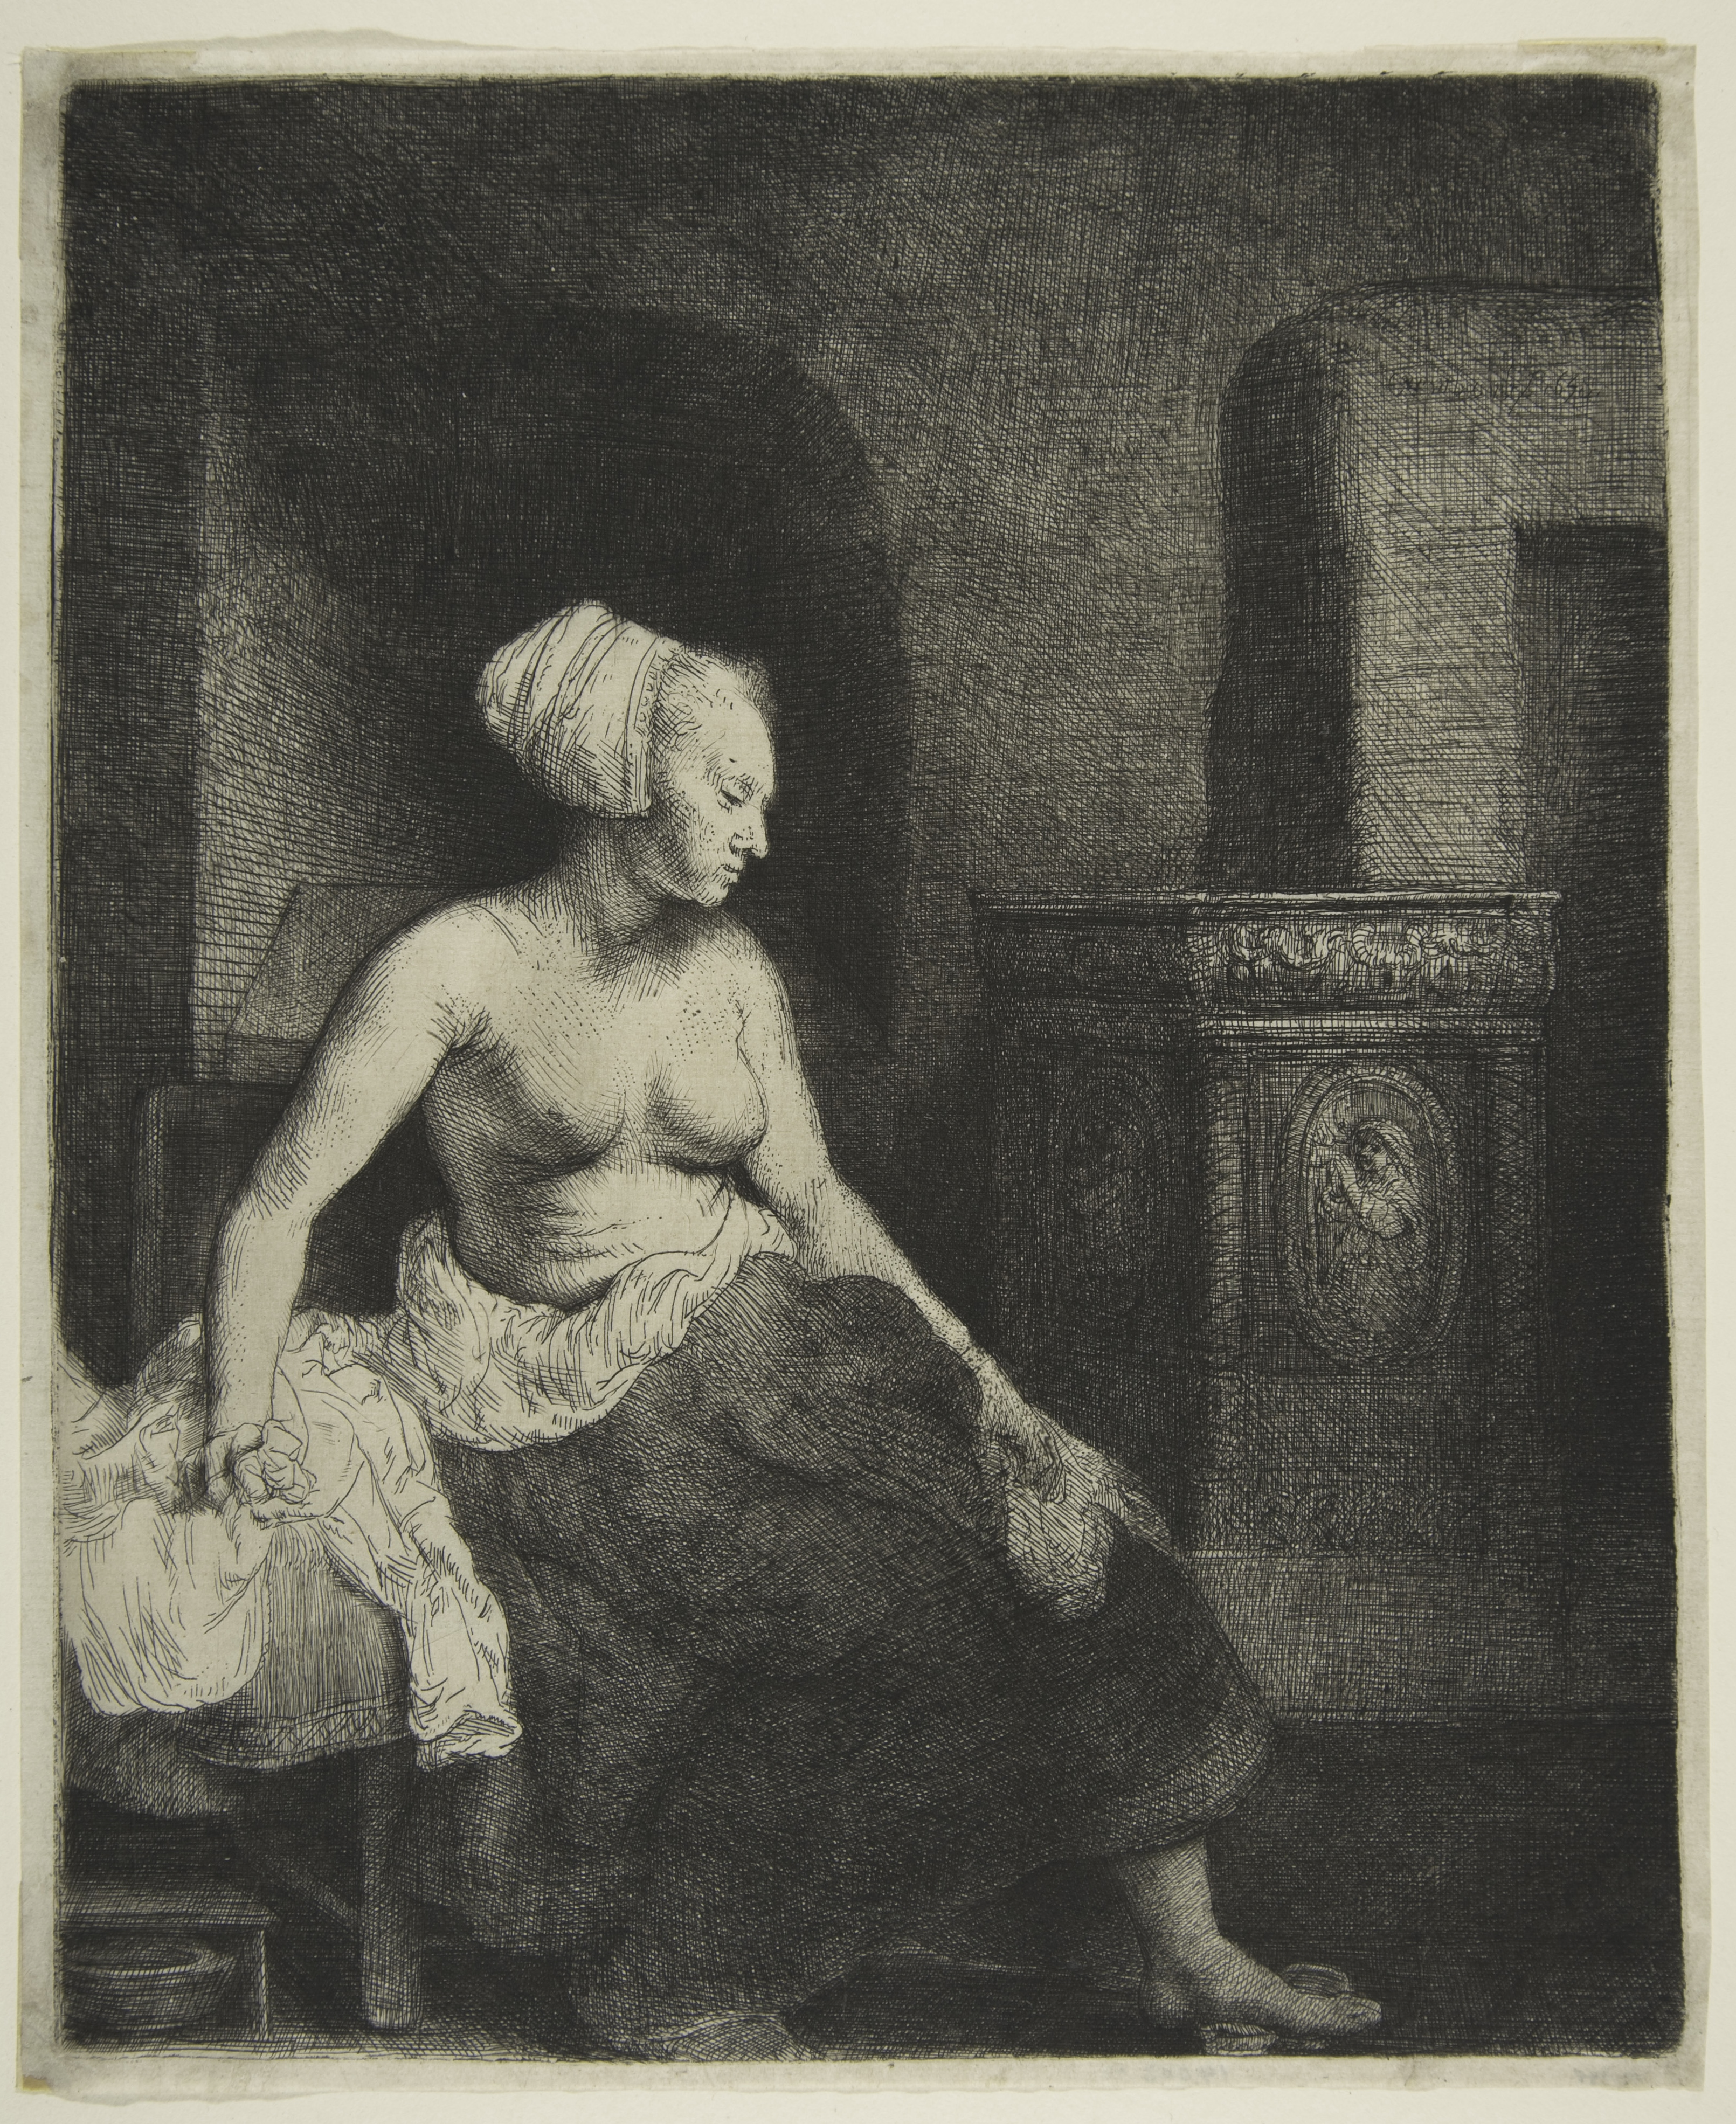 Rembrandt Harmensz van Rijn (1606-1669). Woman Sitting Half-Dressed Beside a Stove, 1658, State III of VII, on 'Chinese' paper. Etching, engraving, and drypoint, sheet: 23.4 x 19.3 cm, plate: 22.7 x 18.6 cm. Metropolitan Museum of Art, New York, NY, purchase, Rogers Fund, 1918 (18.70). Image copyright © The Metropolitan Museum of Art, courtesy Art Resource, NY